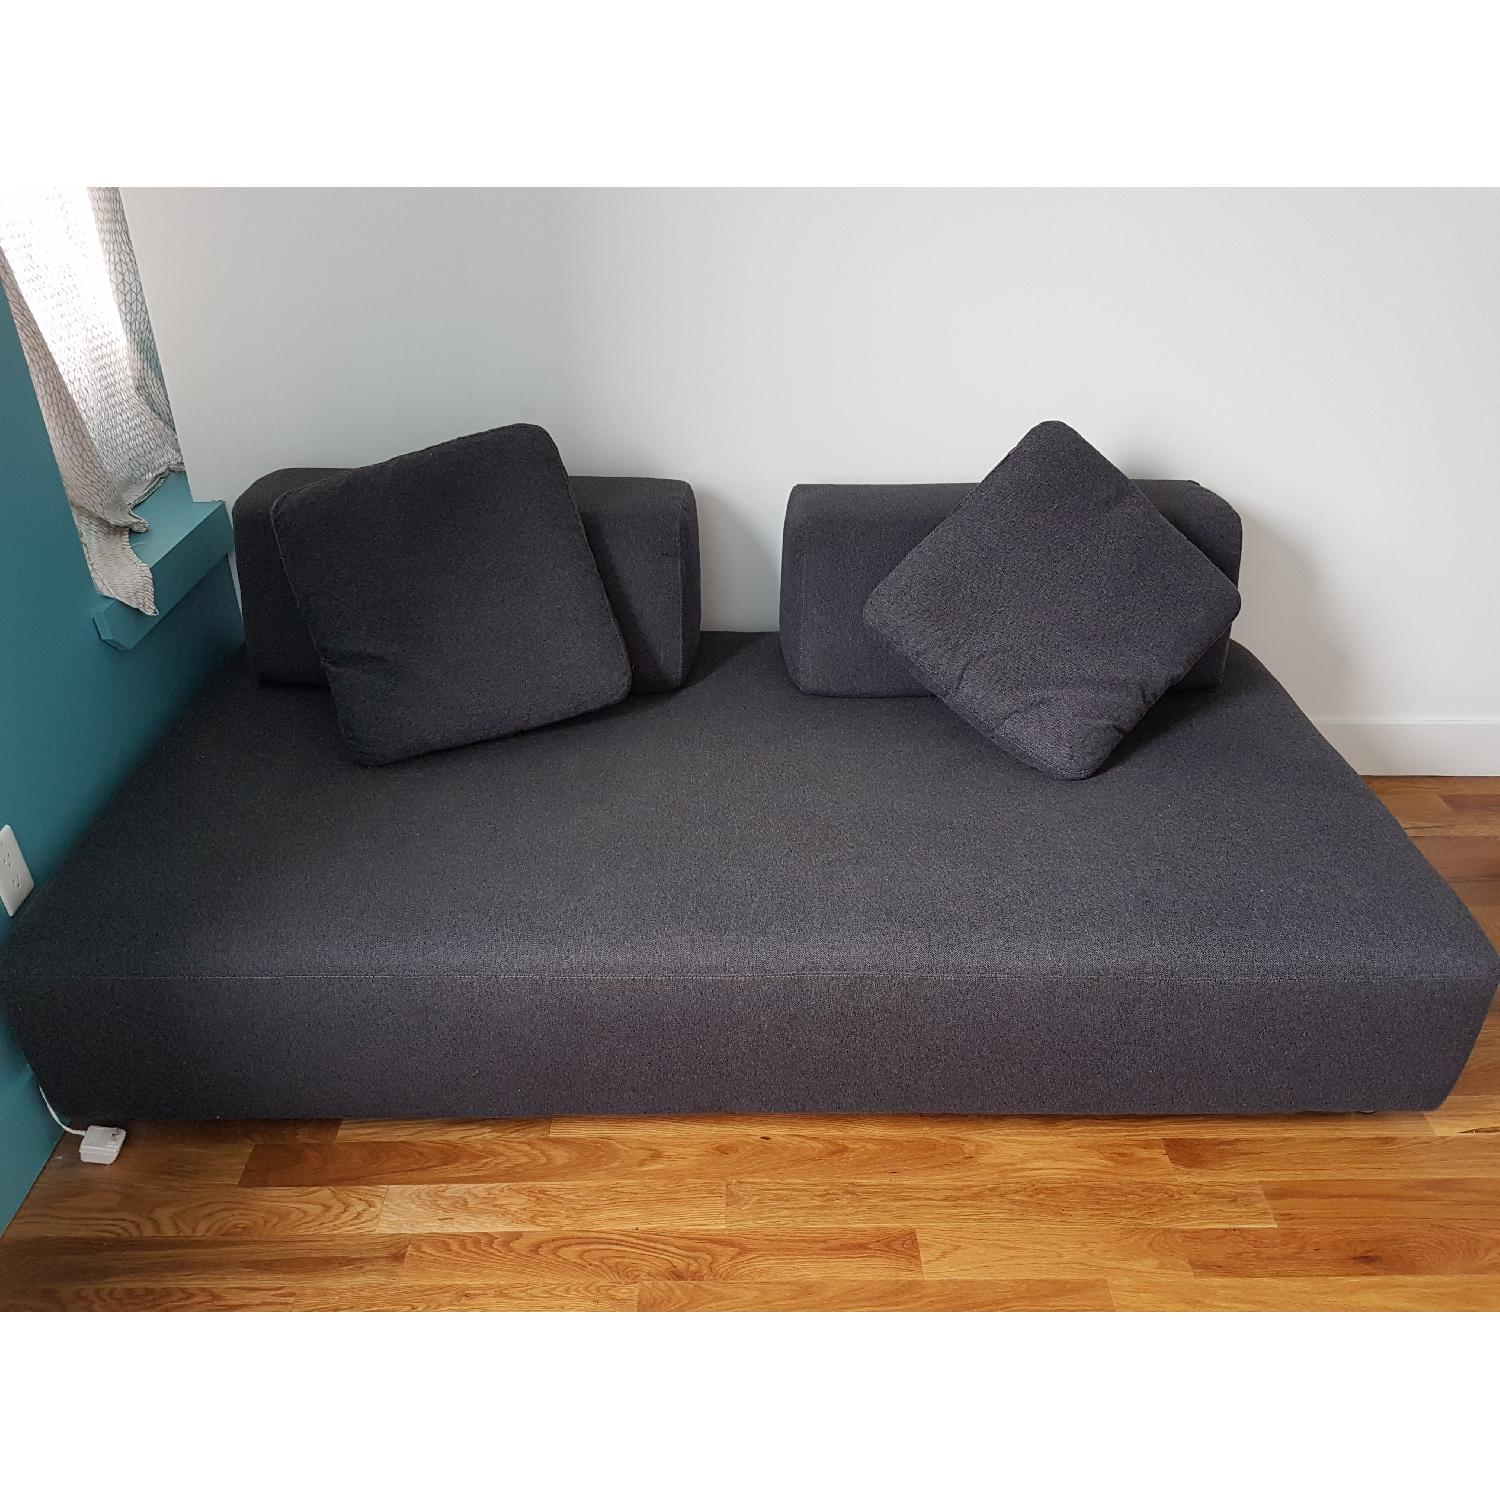 Mobilia Cross Functional Couch/Bed - image-4